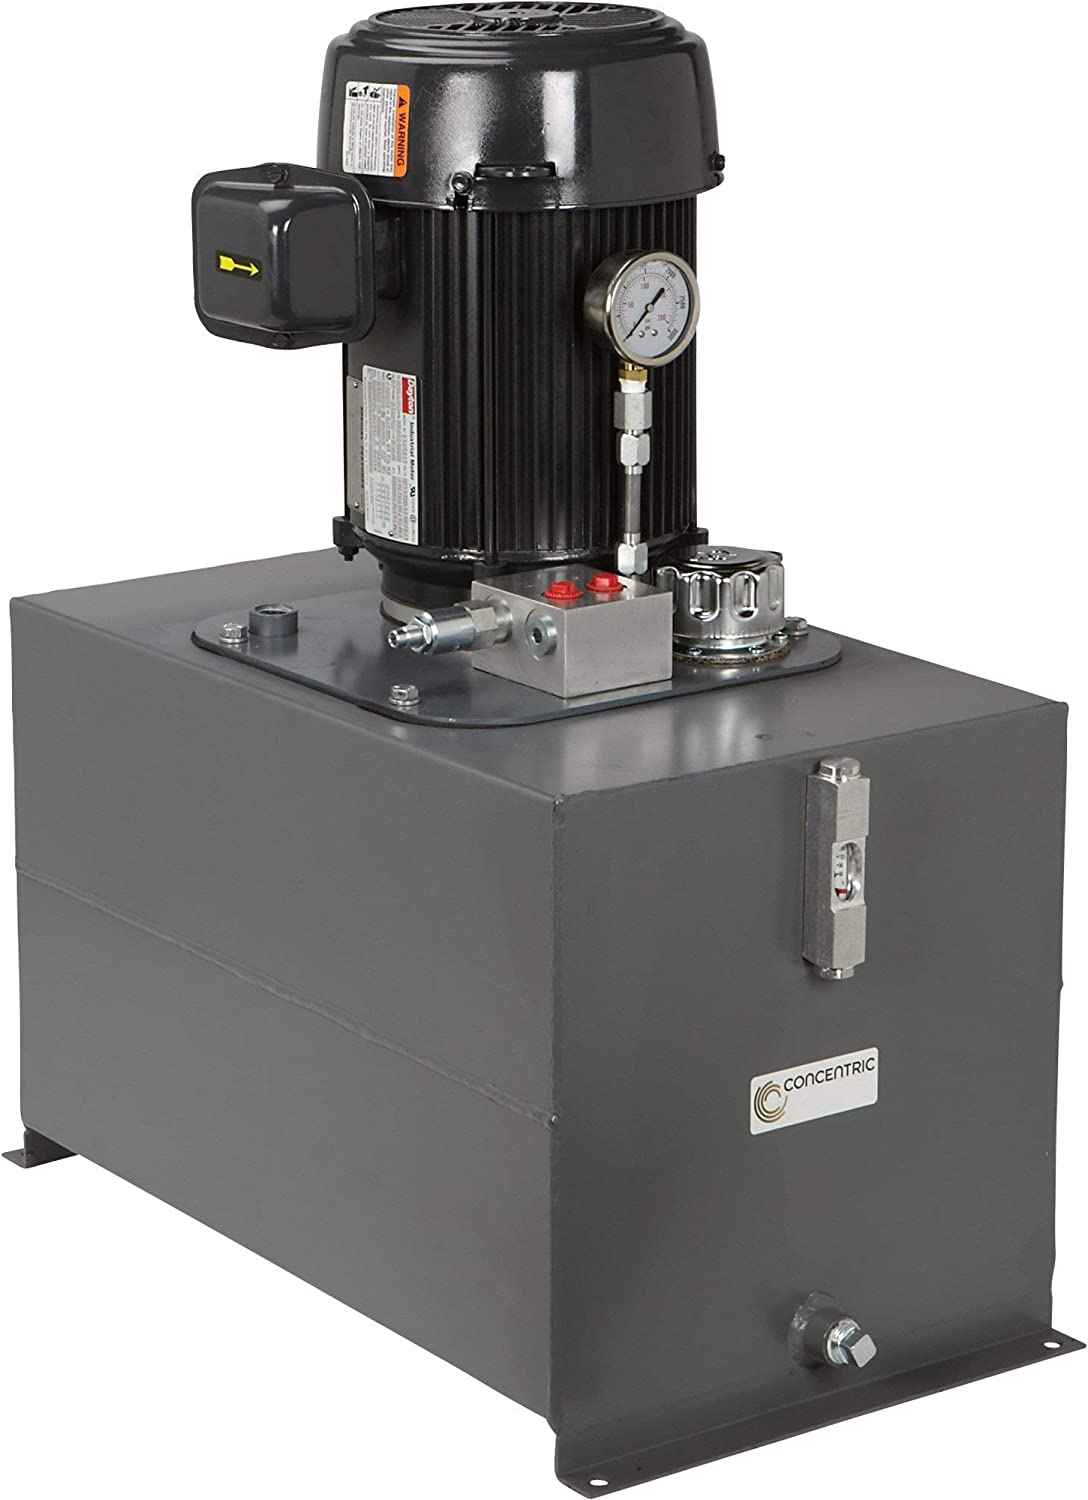 5 HP 230//460V AC Haldex AC Hydraulic Power System Self-Contained Model Number 1400030